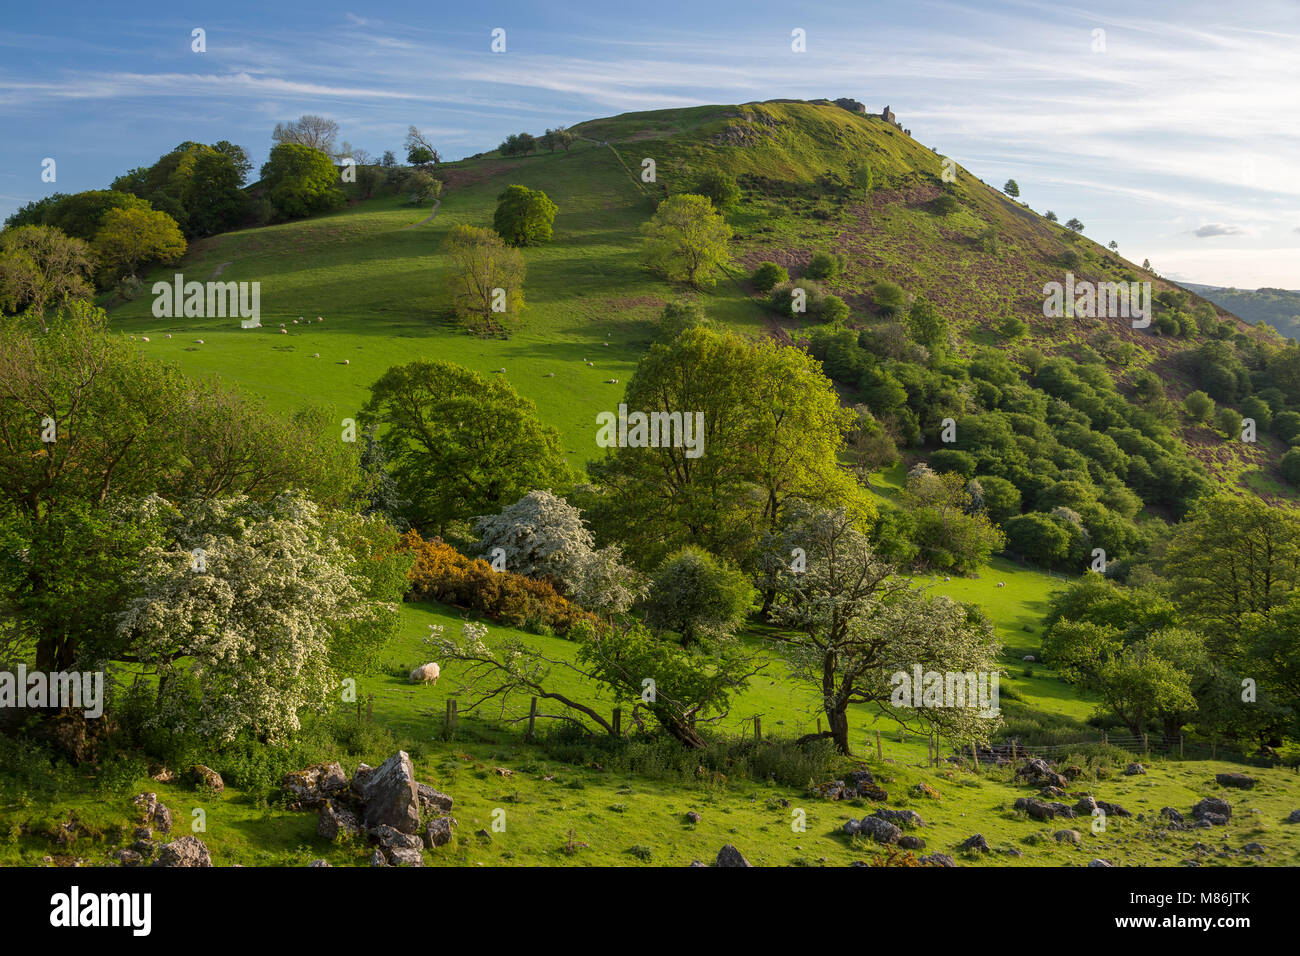 Ruins of castle Dinas Bran on a hilltop near Llangollen, Wales set in rolling pasture in spring with trees in blossom Stock Photo